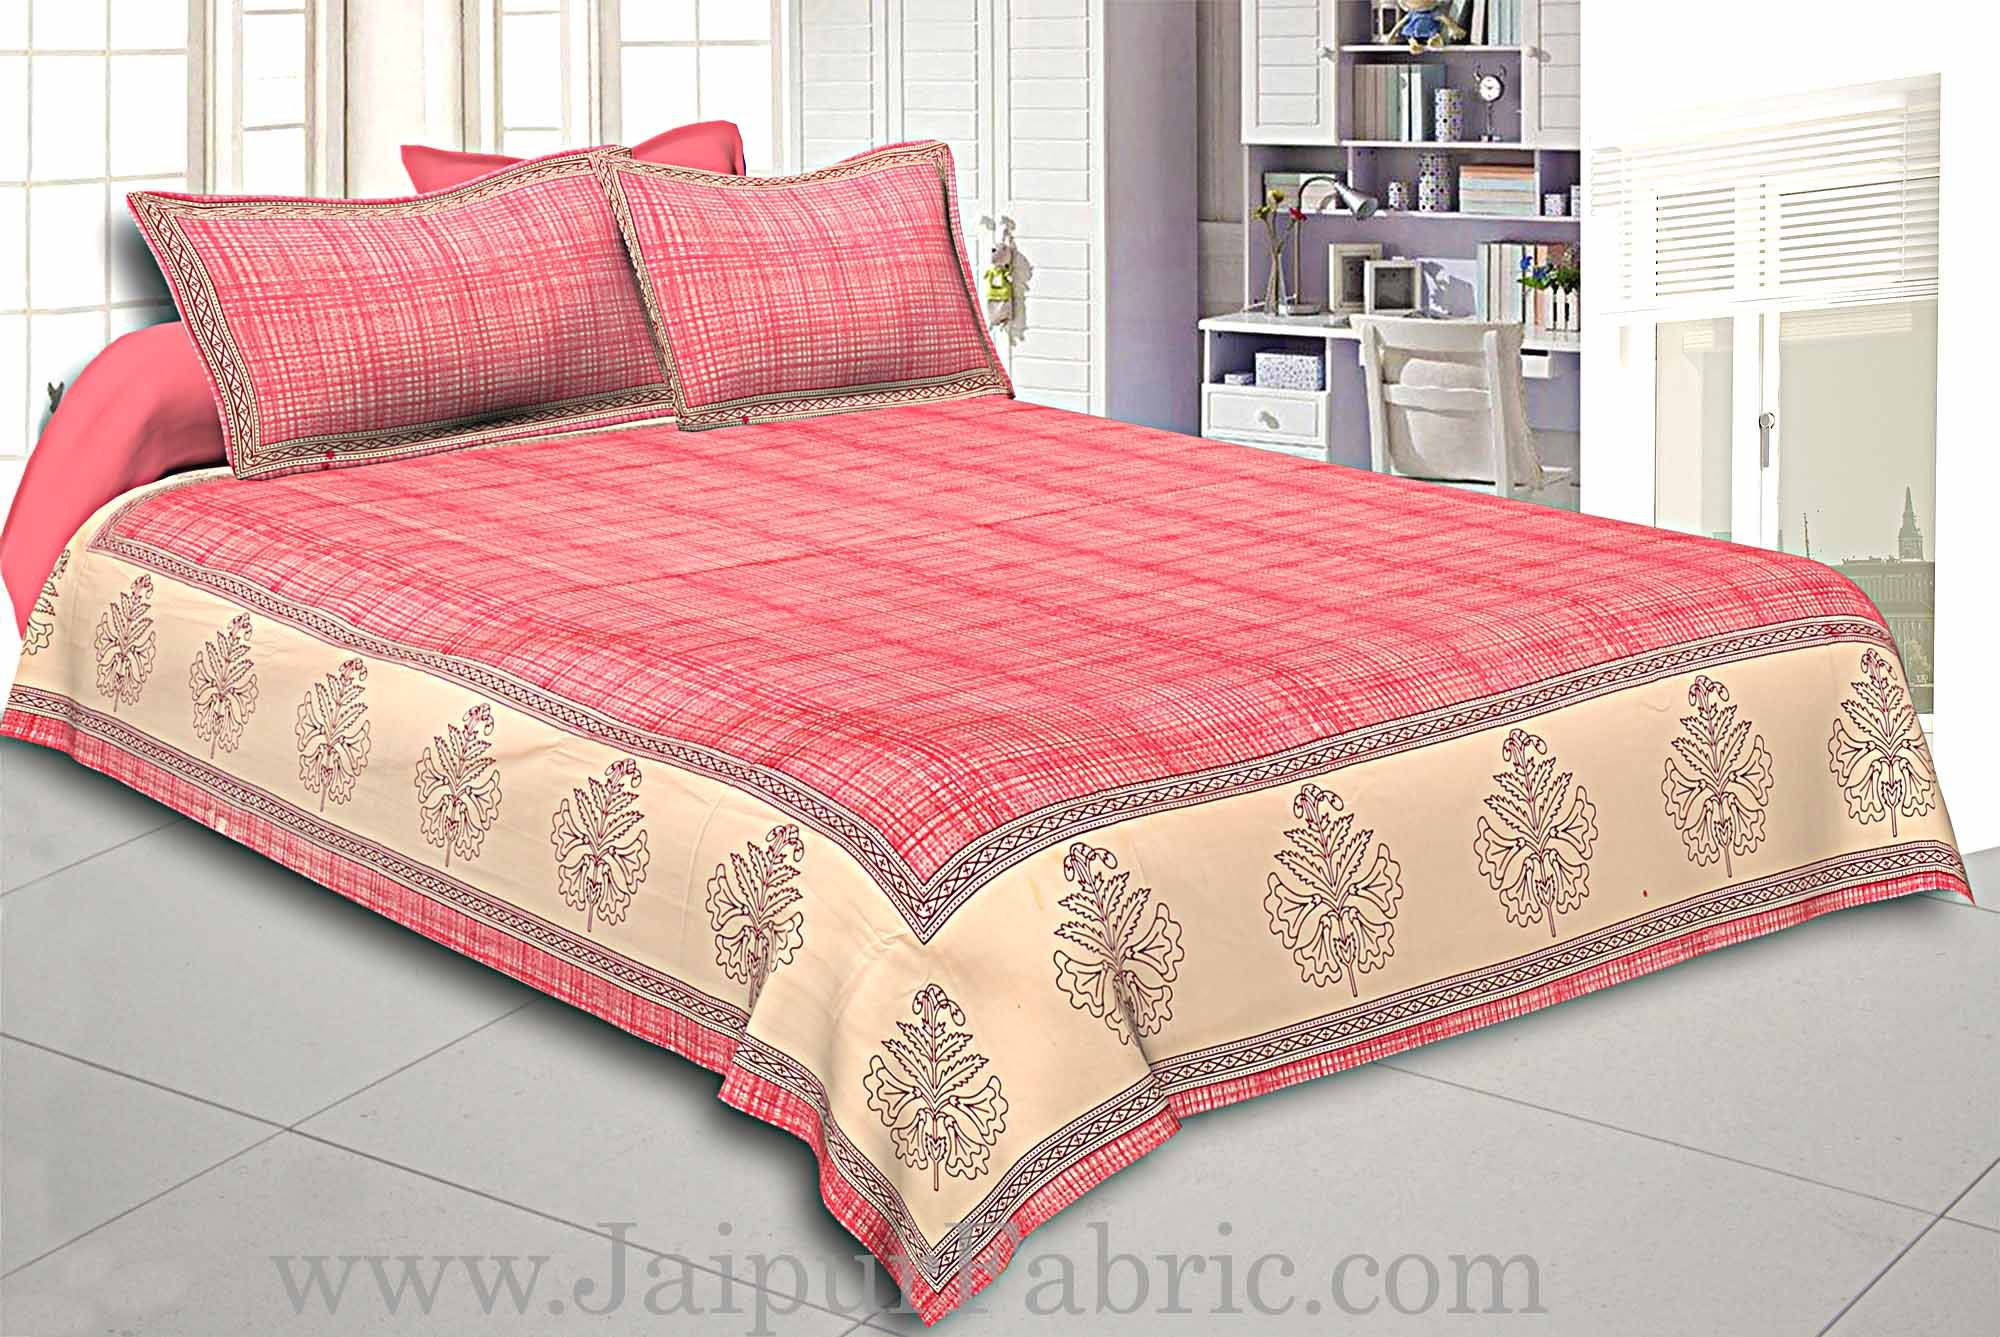 king Size Cotton Satin Double Bed sheet Pink Border With Cream Base  Hand Block  Pattern